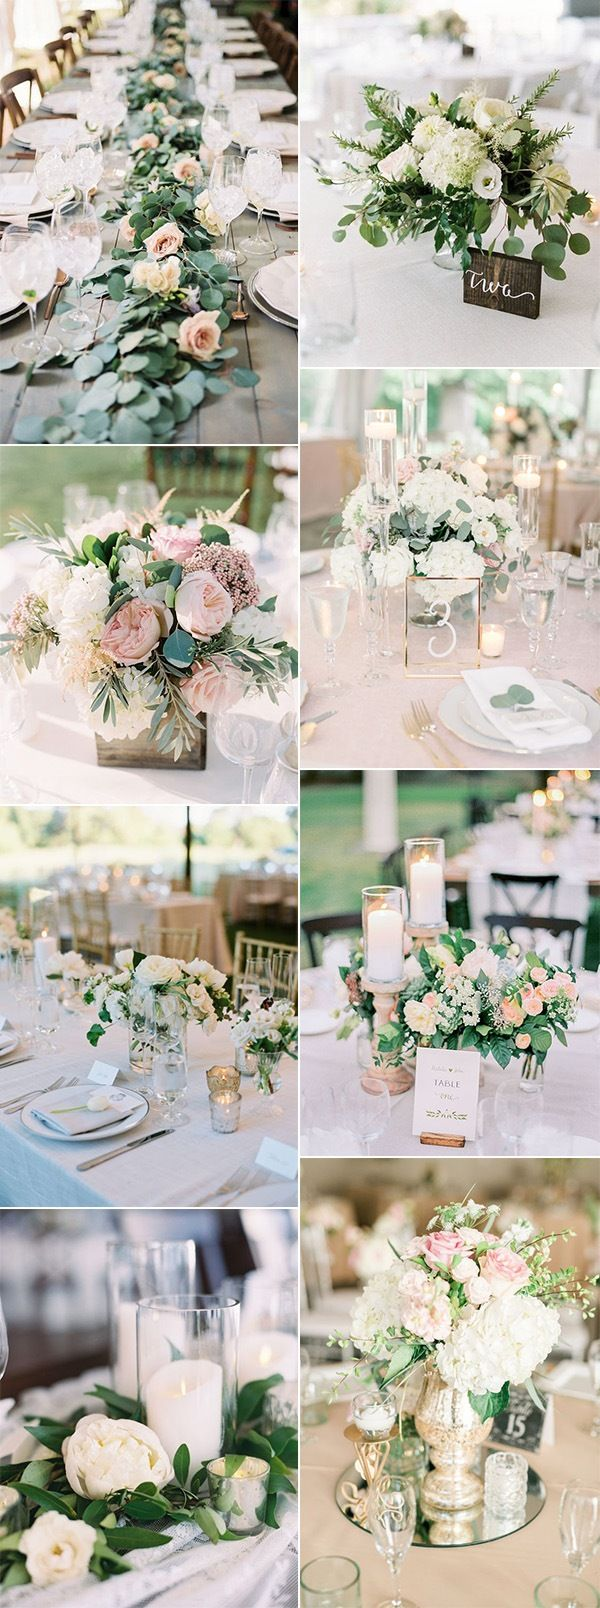 20 Breathtaking Wedding Centerpiece Ideas For Spring 2021 Emmalovesweddings Flower Centerpieces Wedding Spring Wedding Centerpieces Spring Wedding Flowers